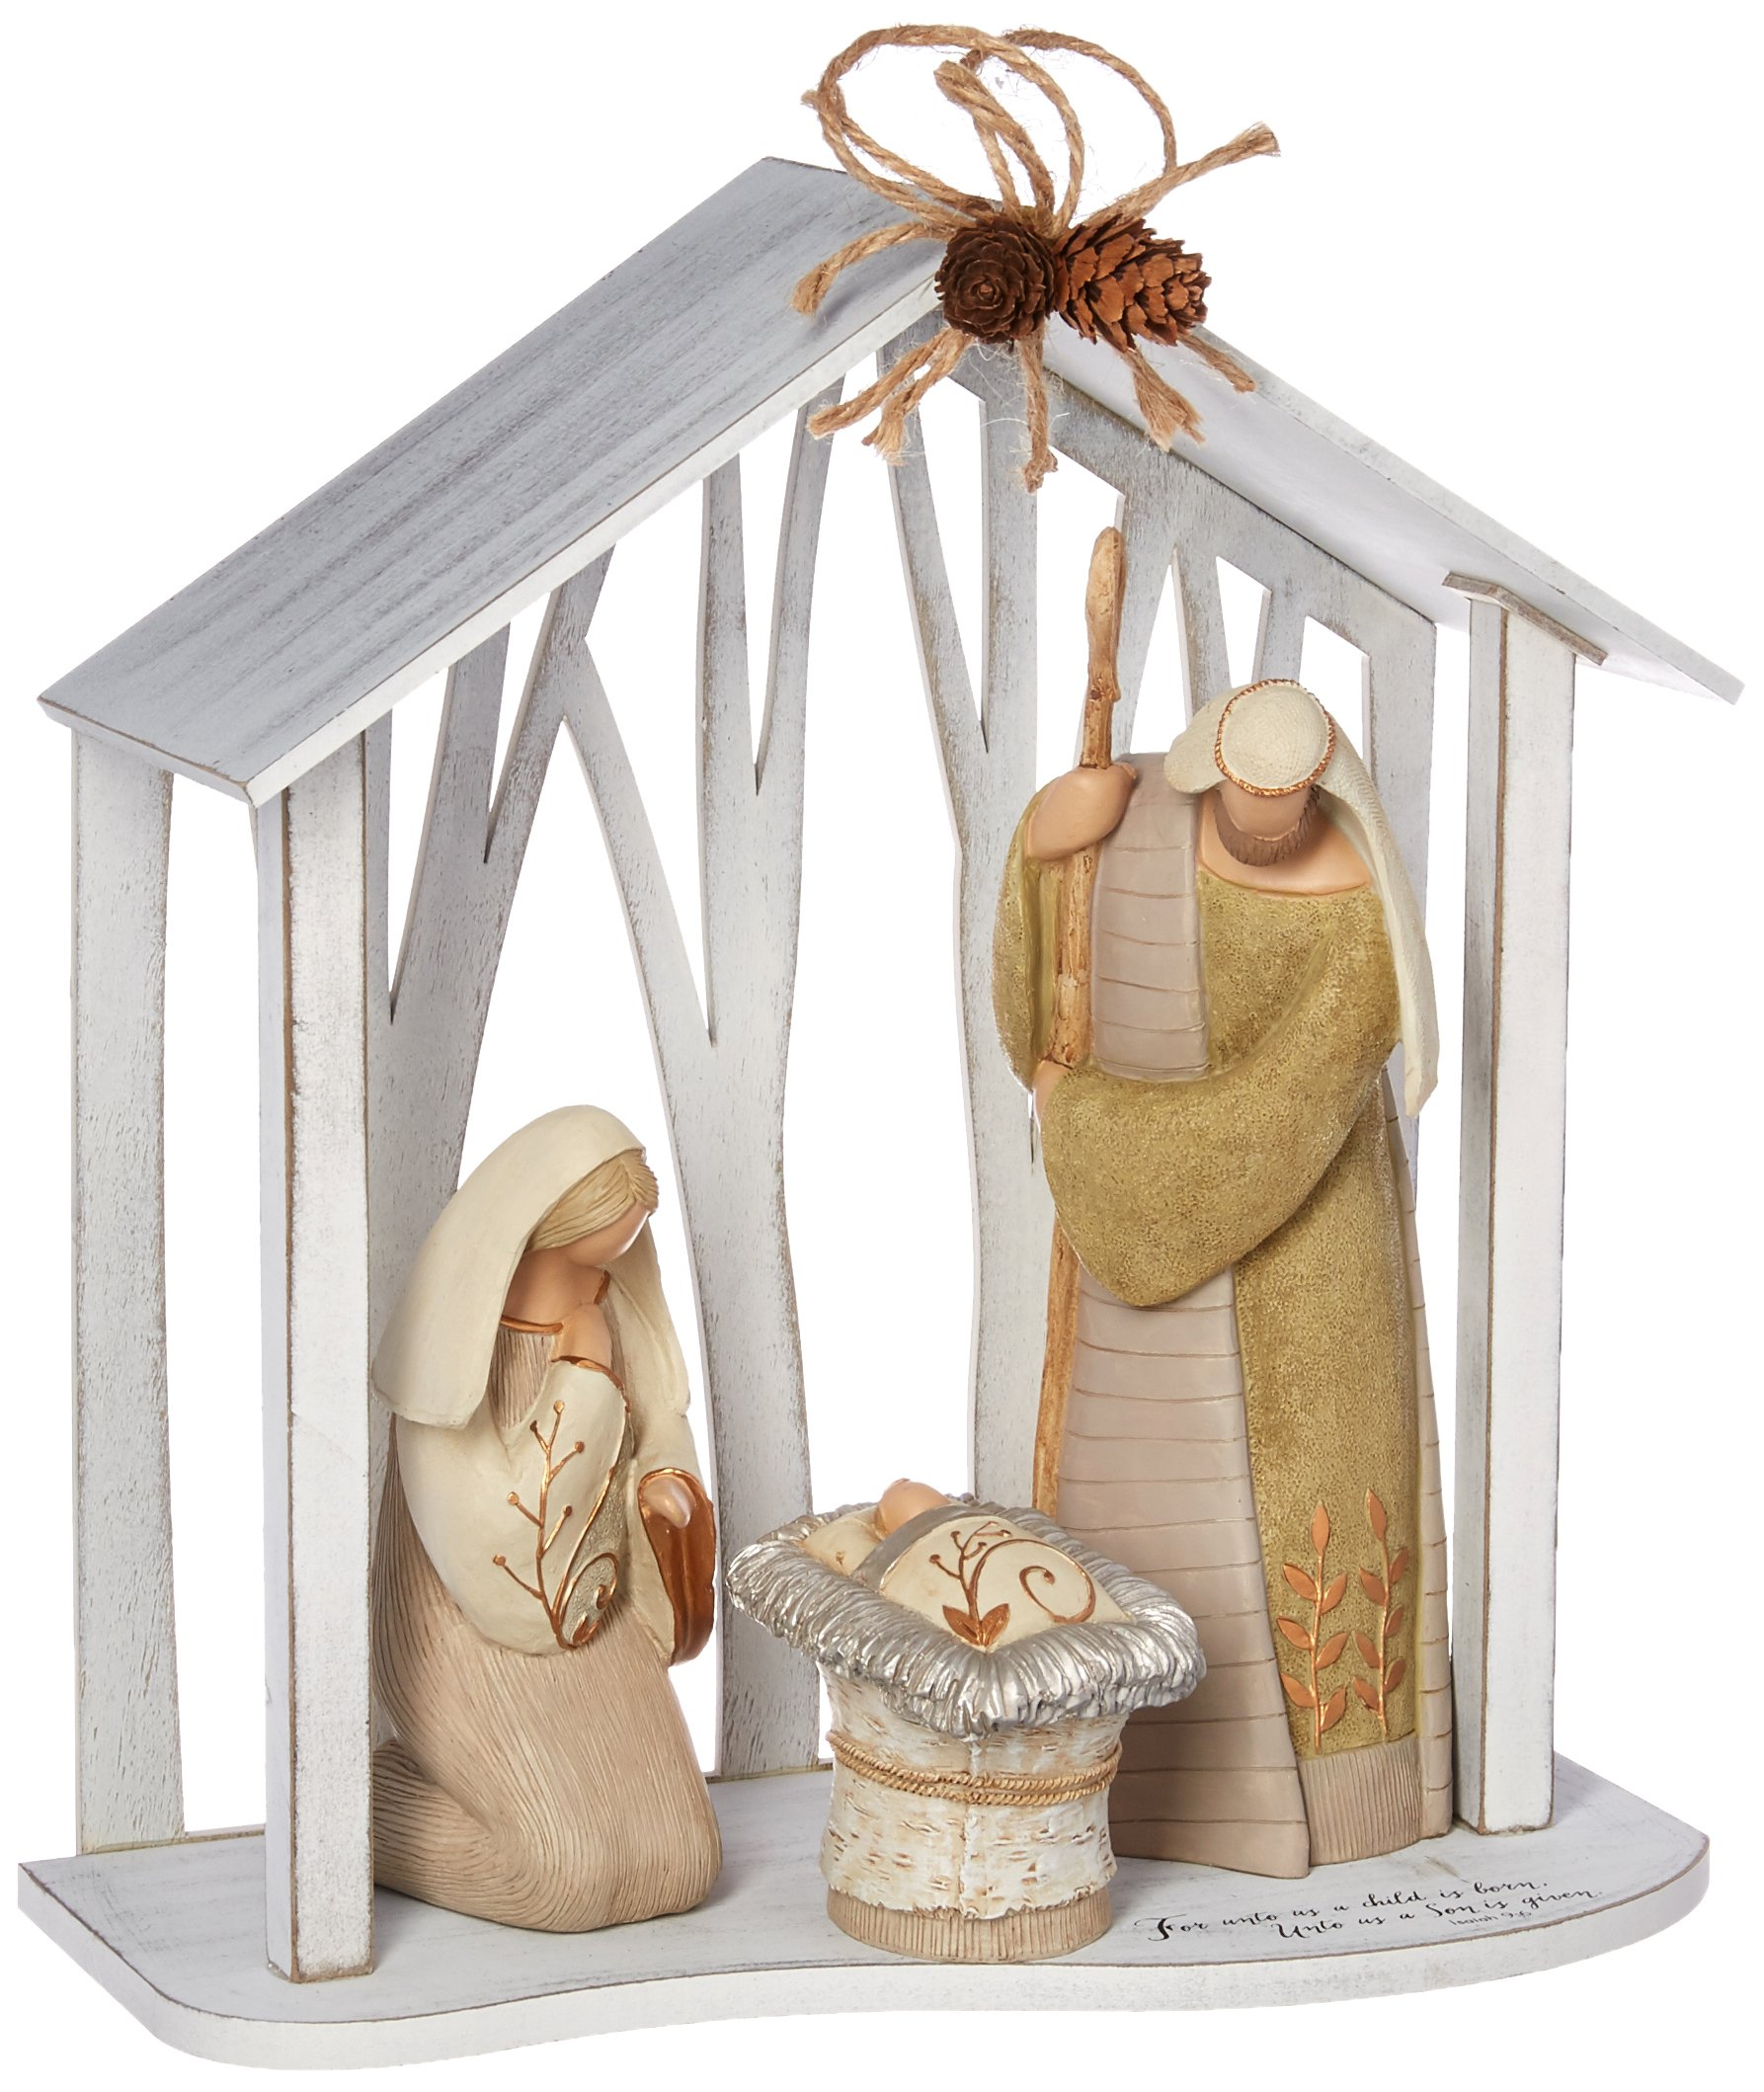 Enesco Legacy of Love by Gregg Gift Holy Family in Creche Wood and Stone Resin Figurine, 13""